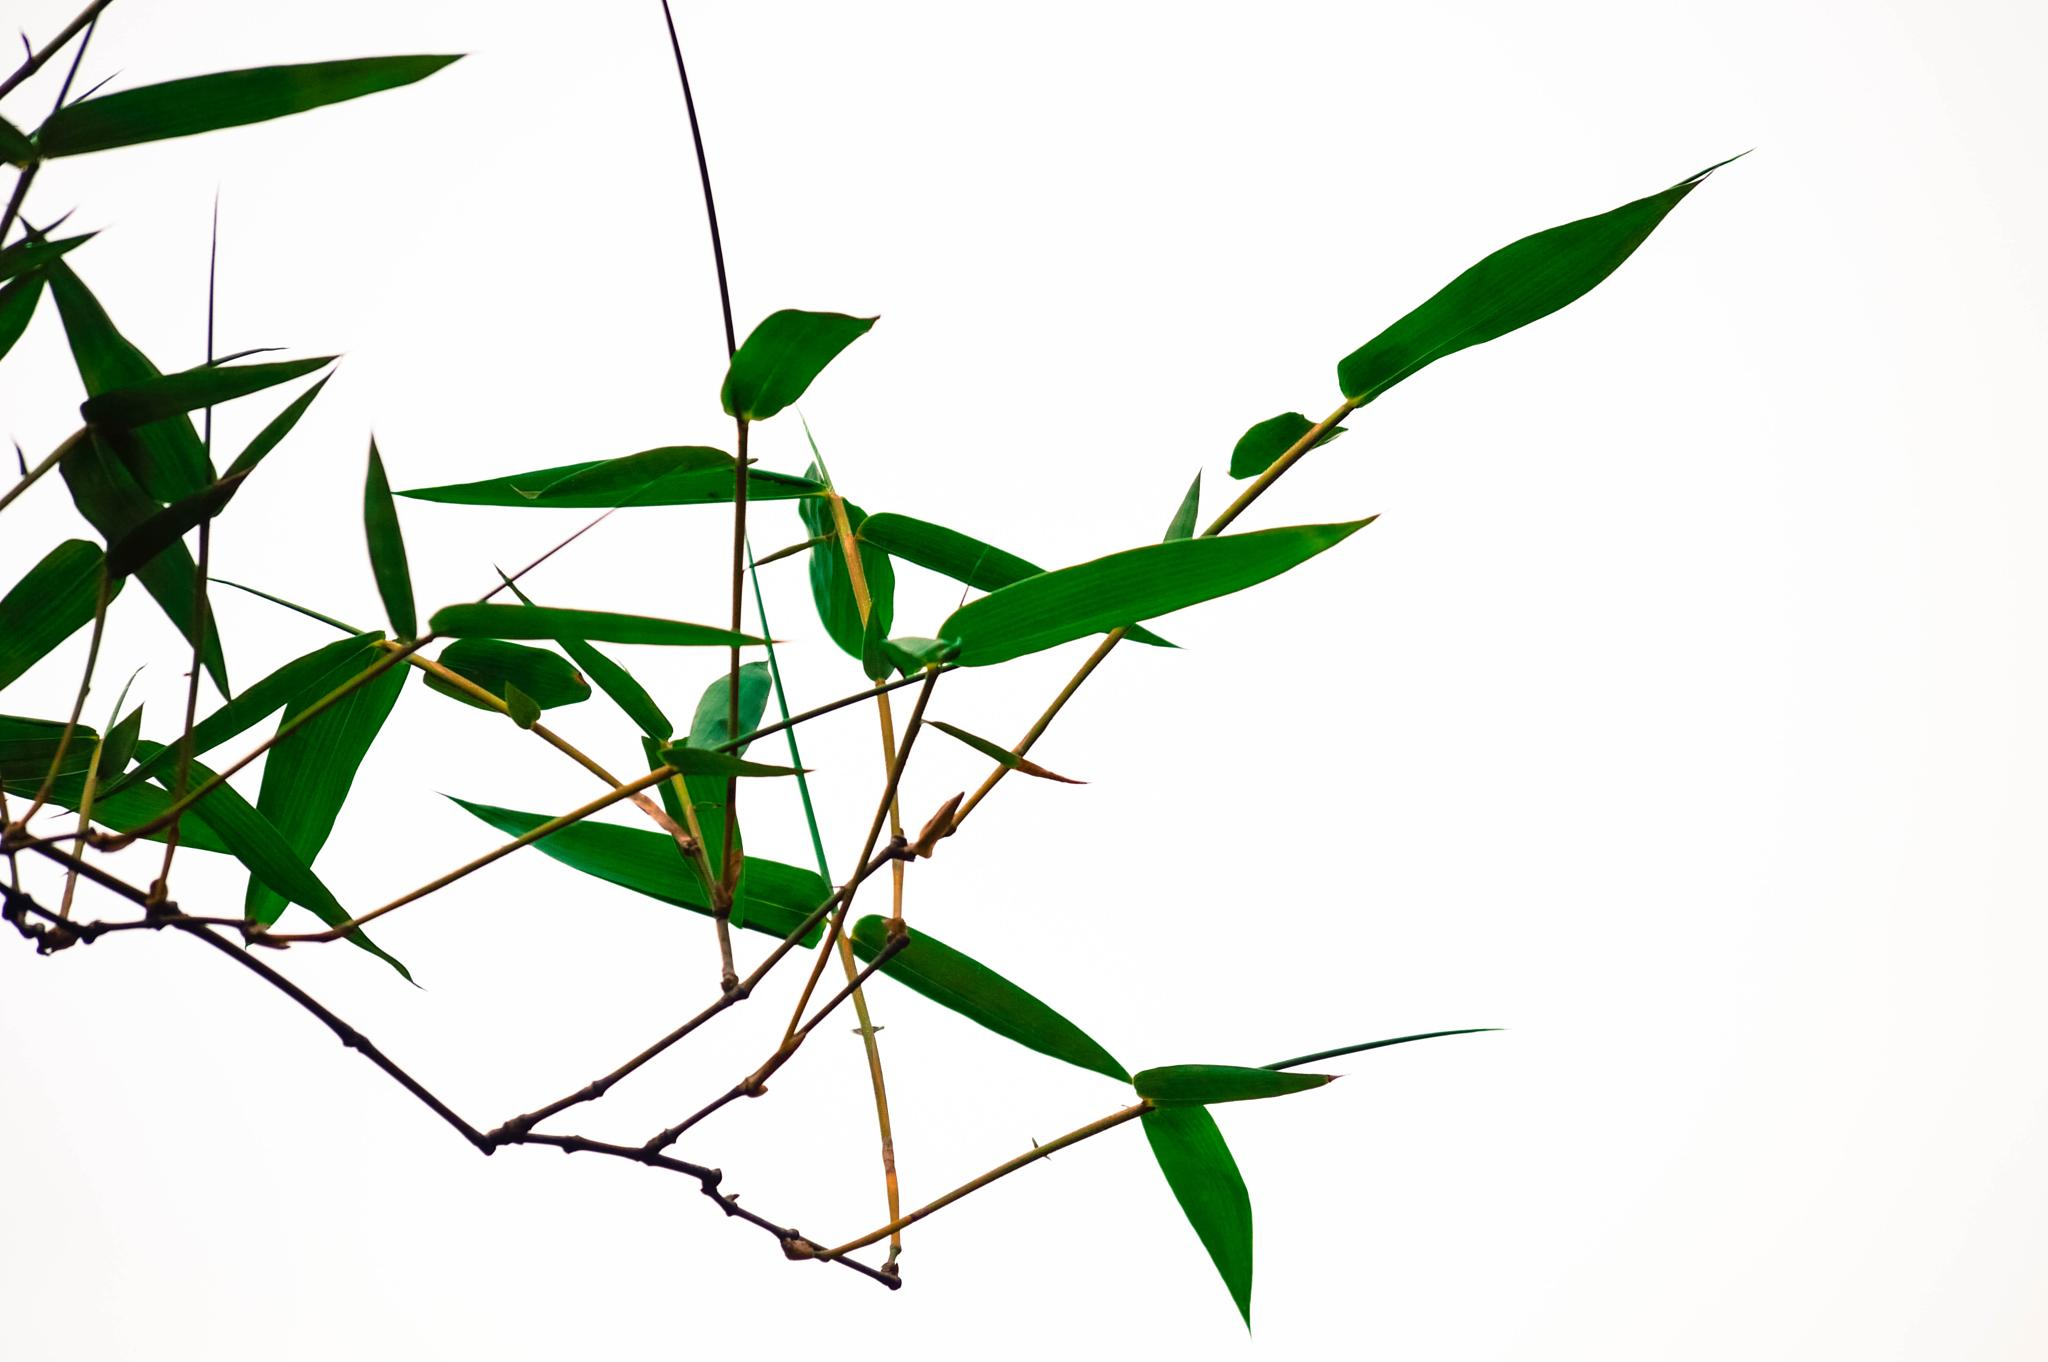 Leaves of Bamboo by Mirza N. Islam